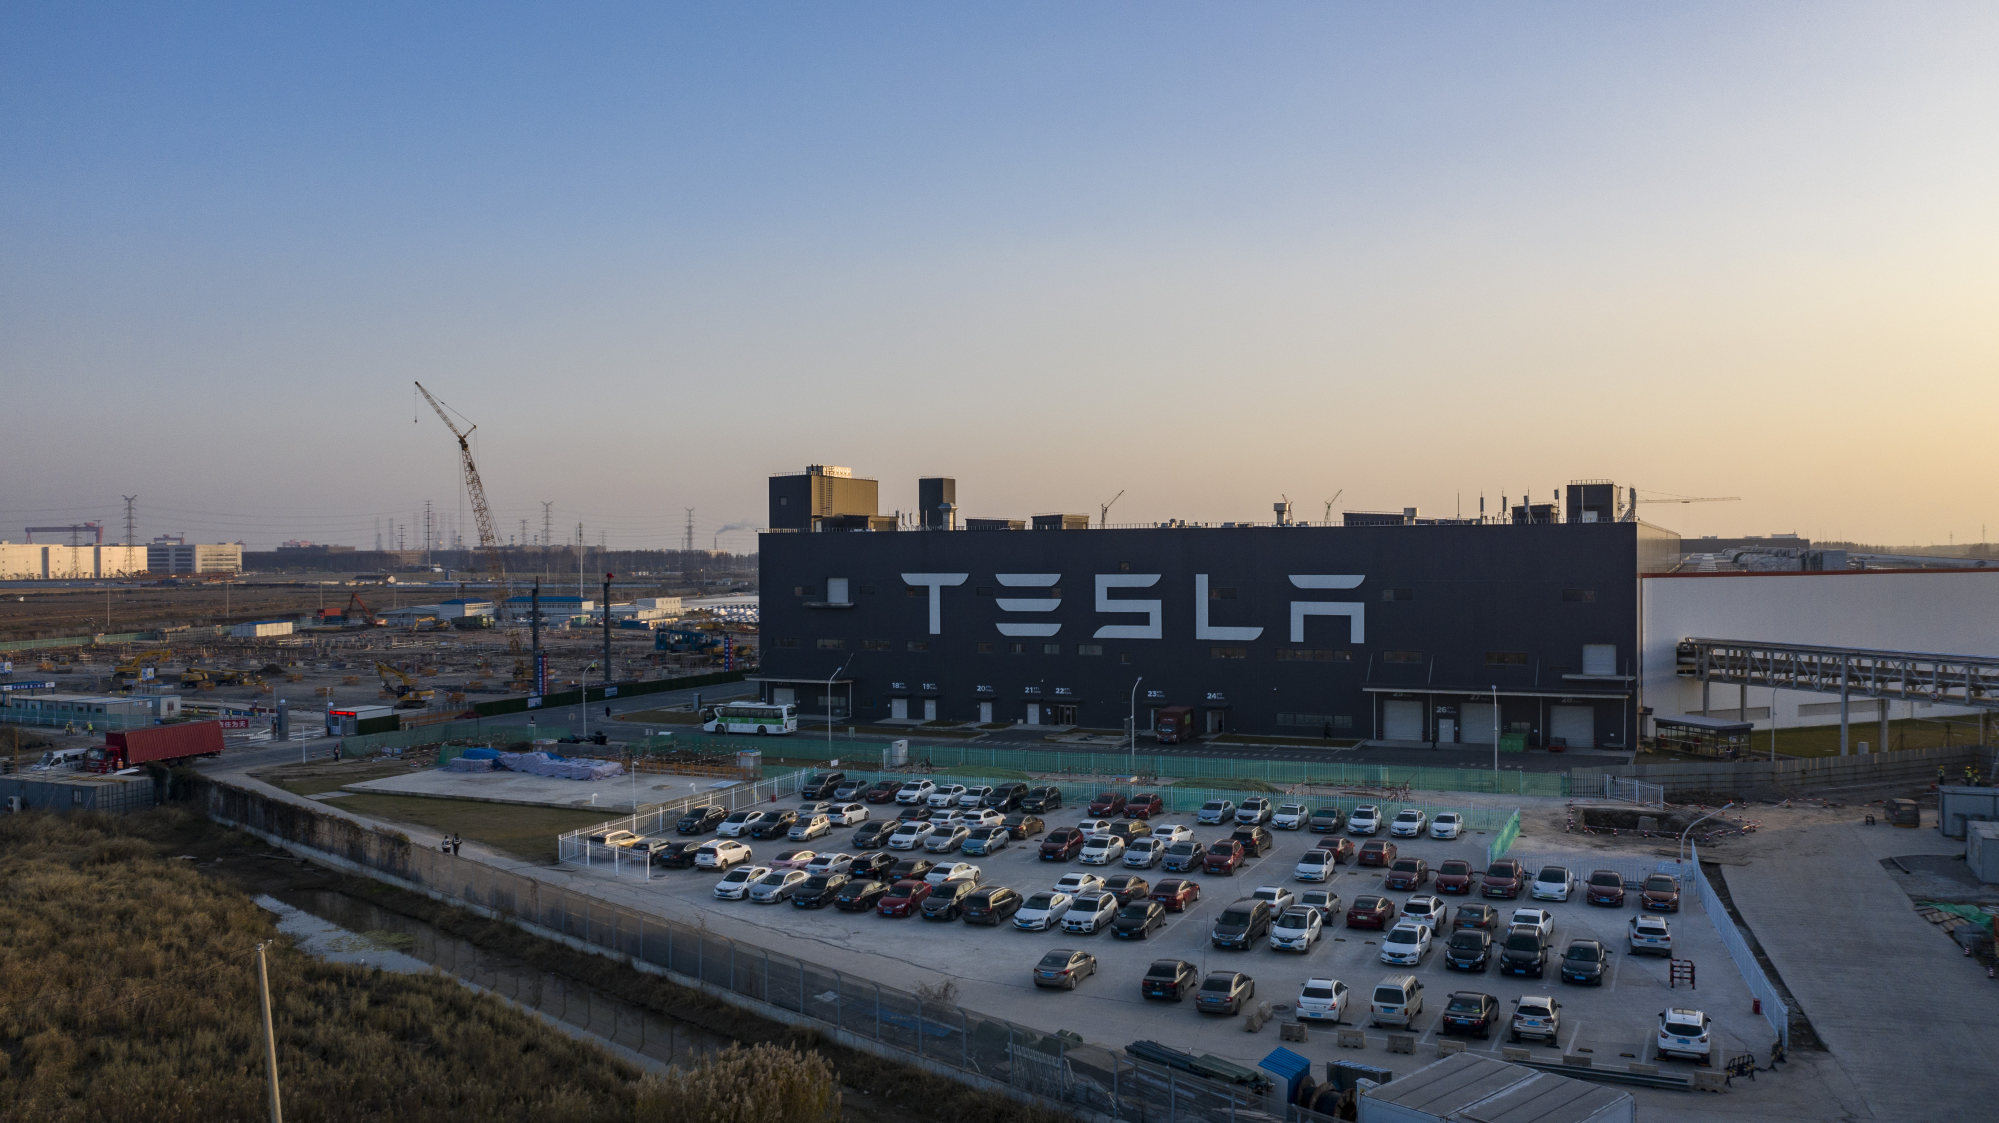 Tesla's Gigafactory 3 plant at the Lingang Free Trade Zone in Shanghai on Friday, December 25, 2020. Photo: Bloomberg